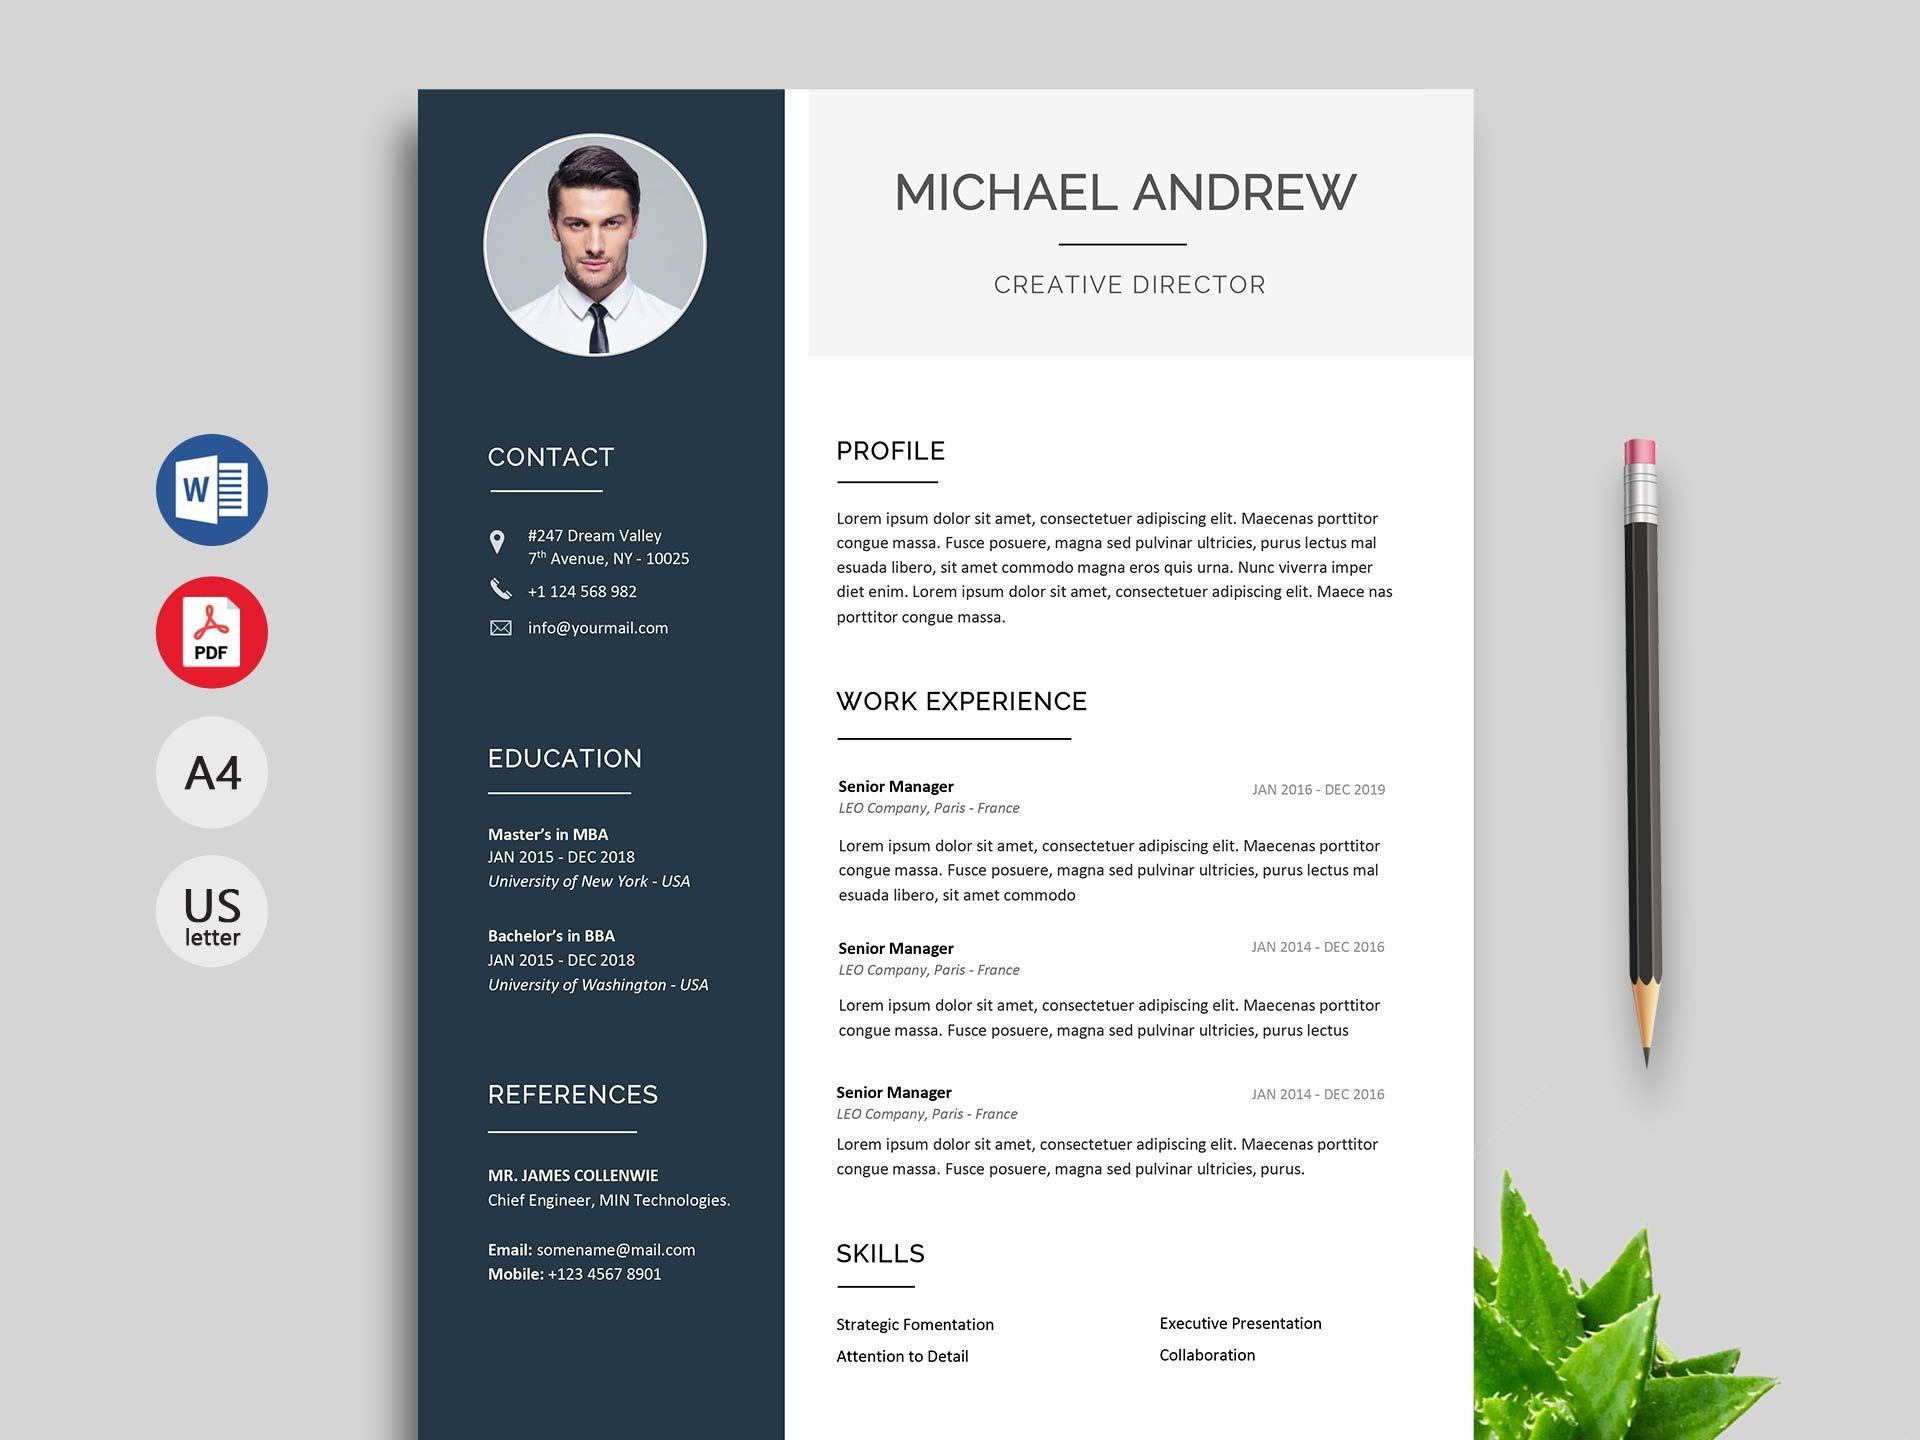 010 Unbelievable Resume Template Free Word Download Picture  Cv With Photo Malaysia Australia1920